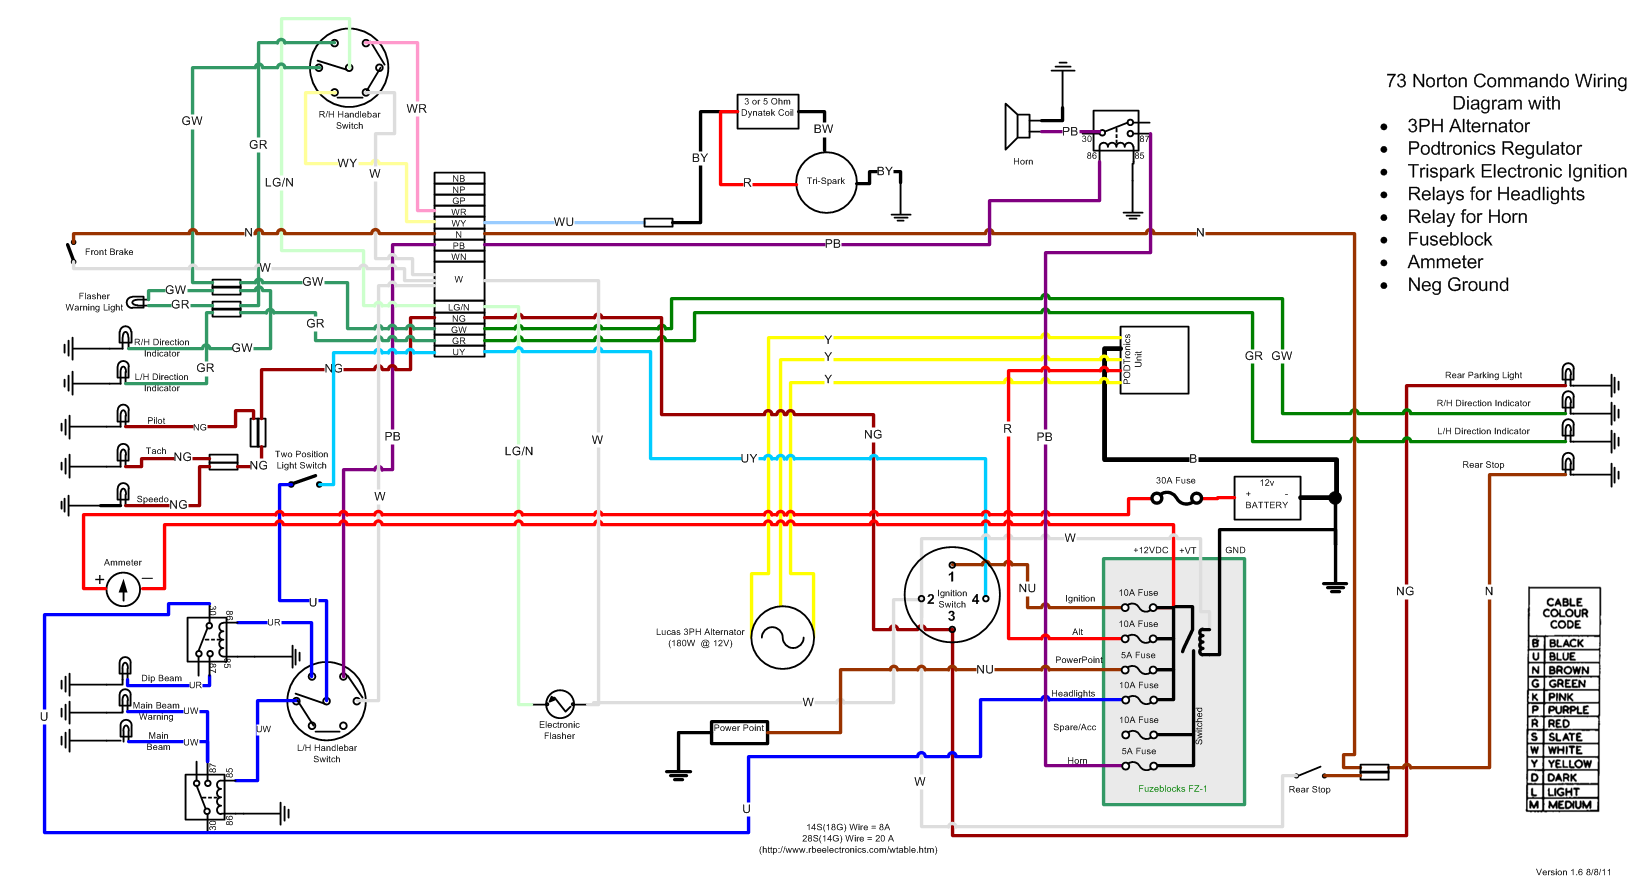 73wiringdiagram norton commando workshop companion workshop wiring diagram at bakdesigns.co